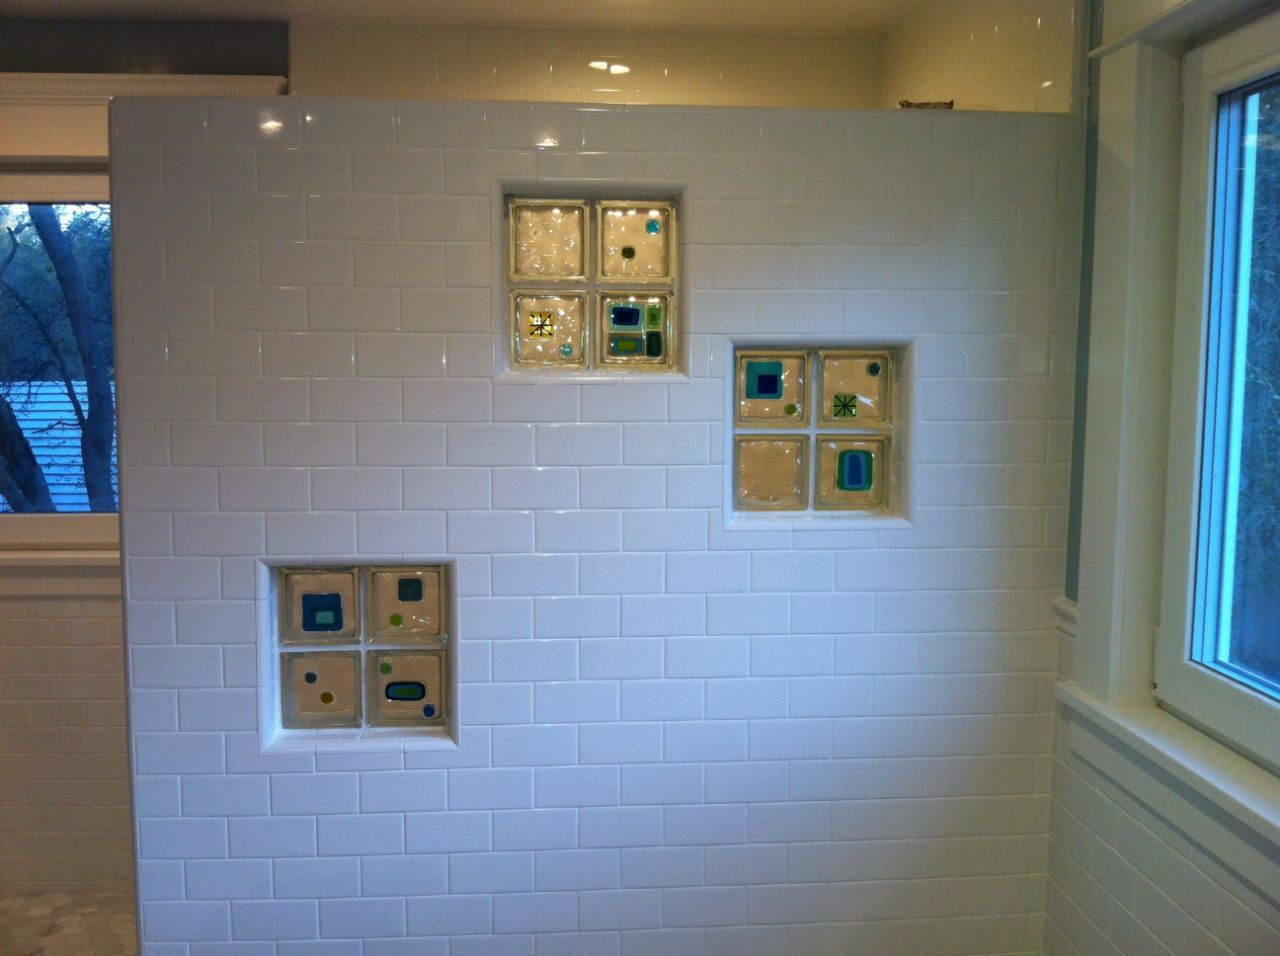 California bath remodel, pedestal tub, glass tile blocks, subway tile